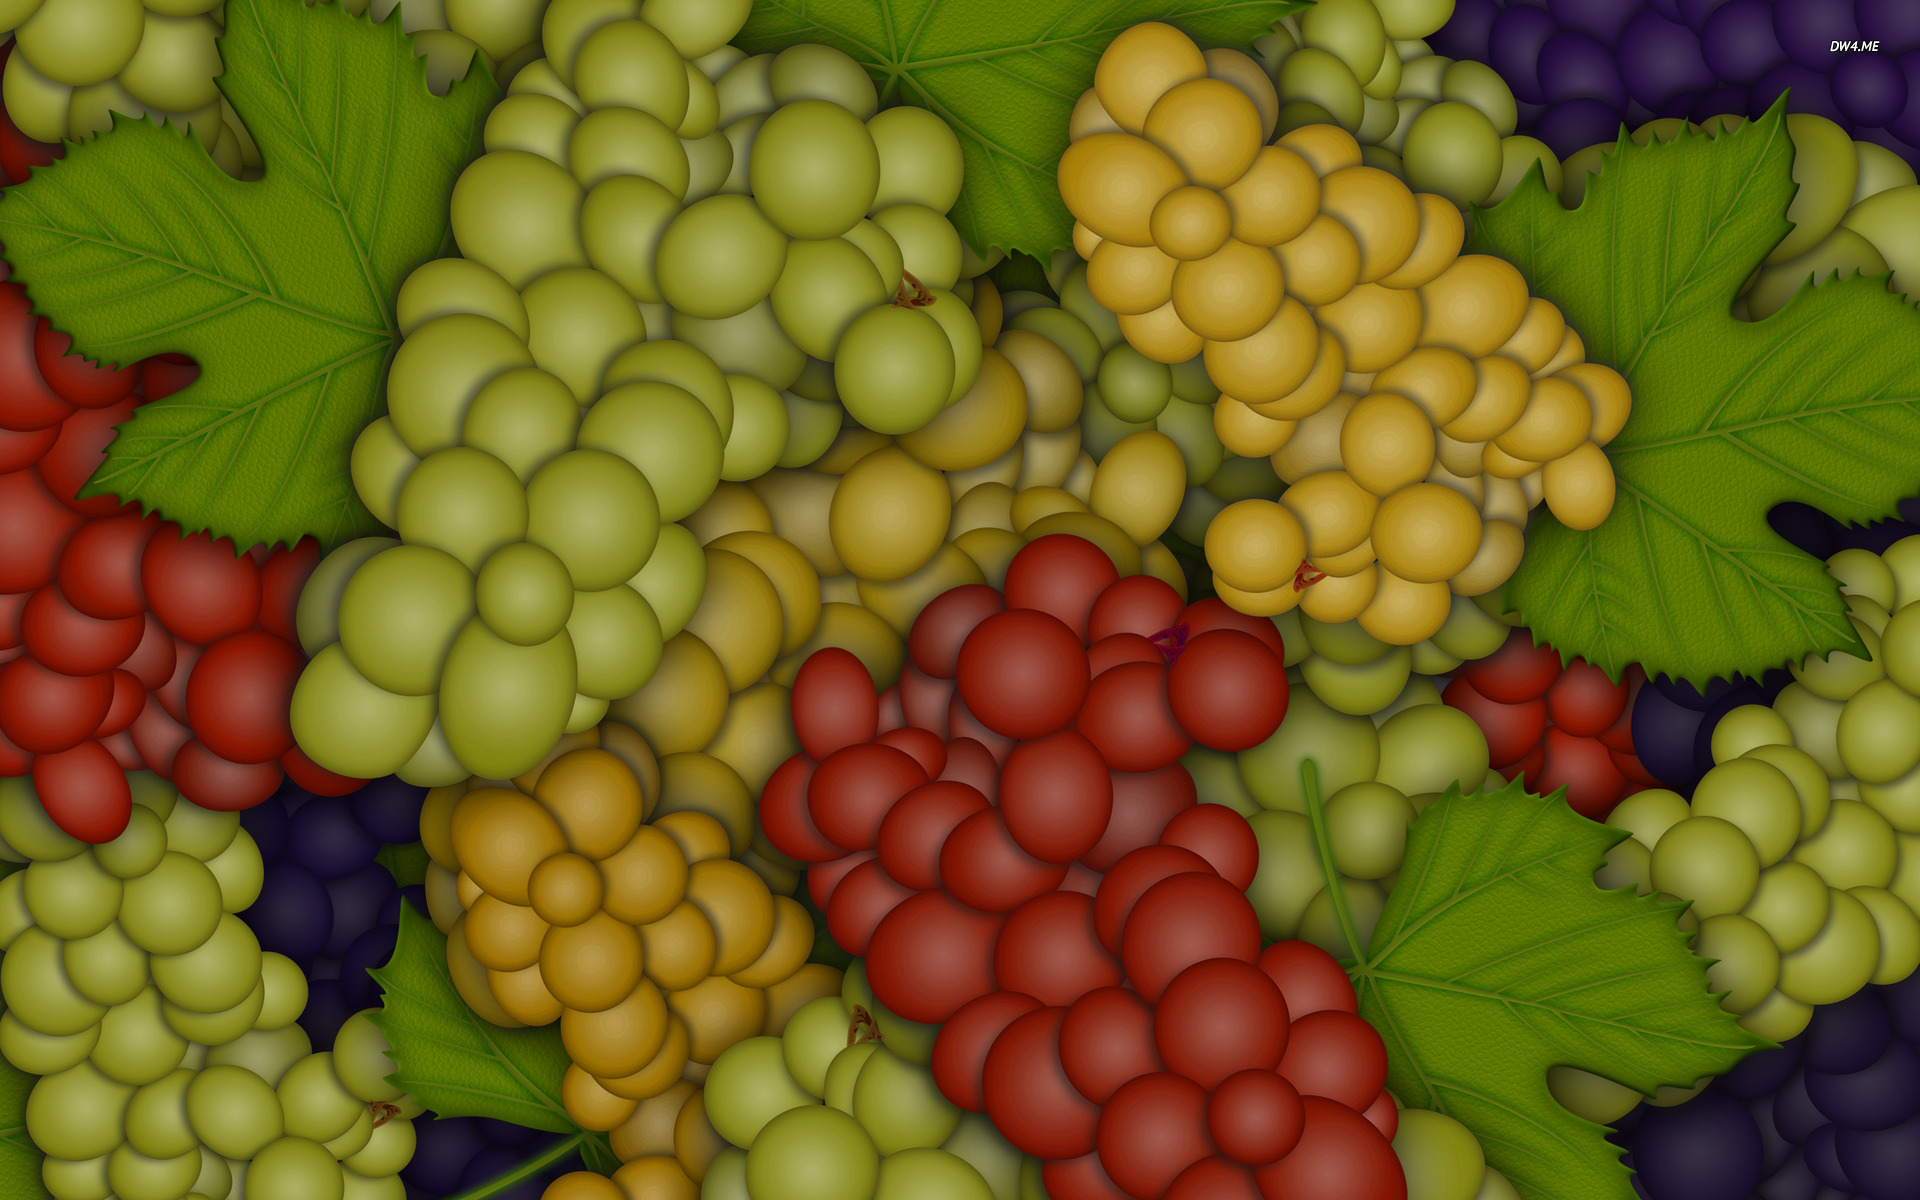 Grapes wallpaper   Digital Art wallpapers   1779 1920x1200